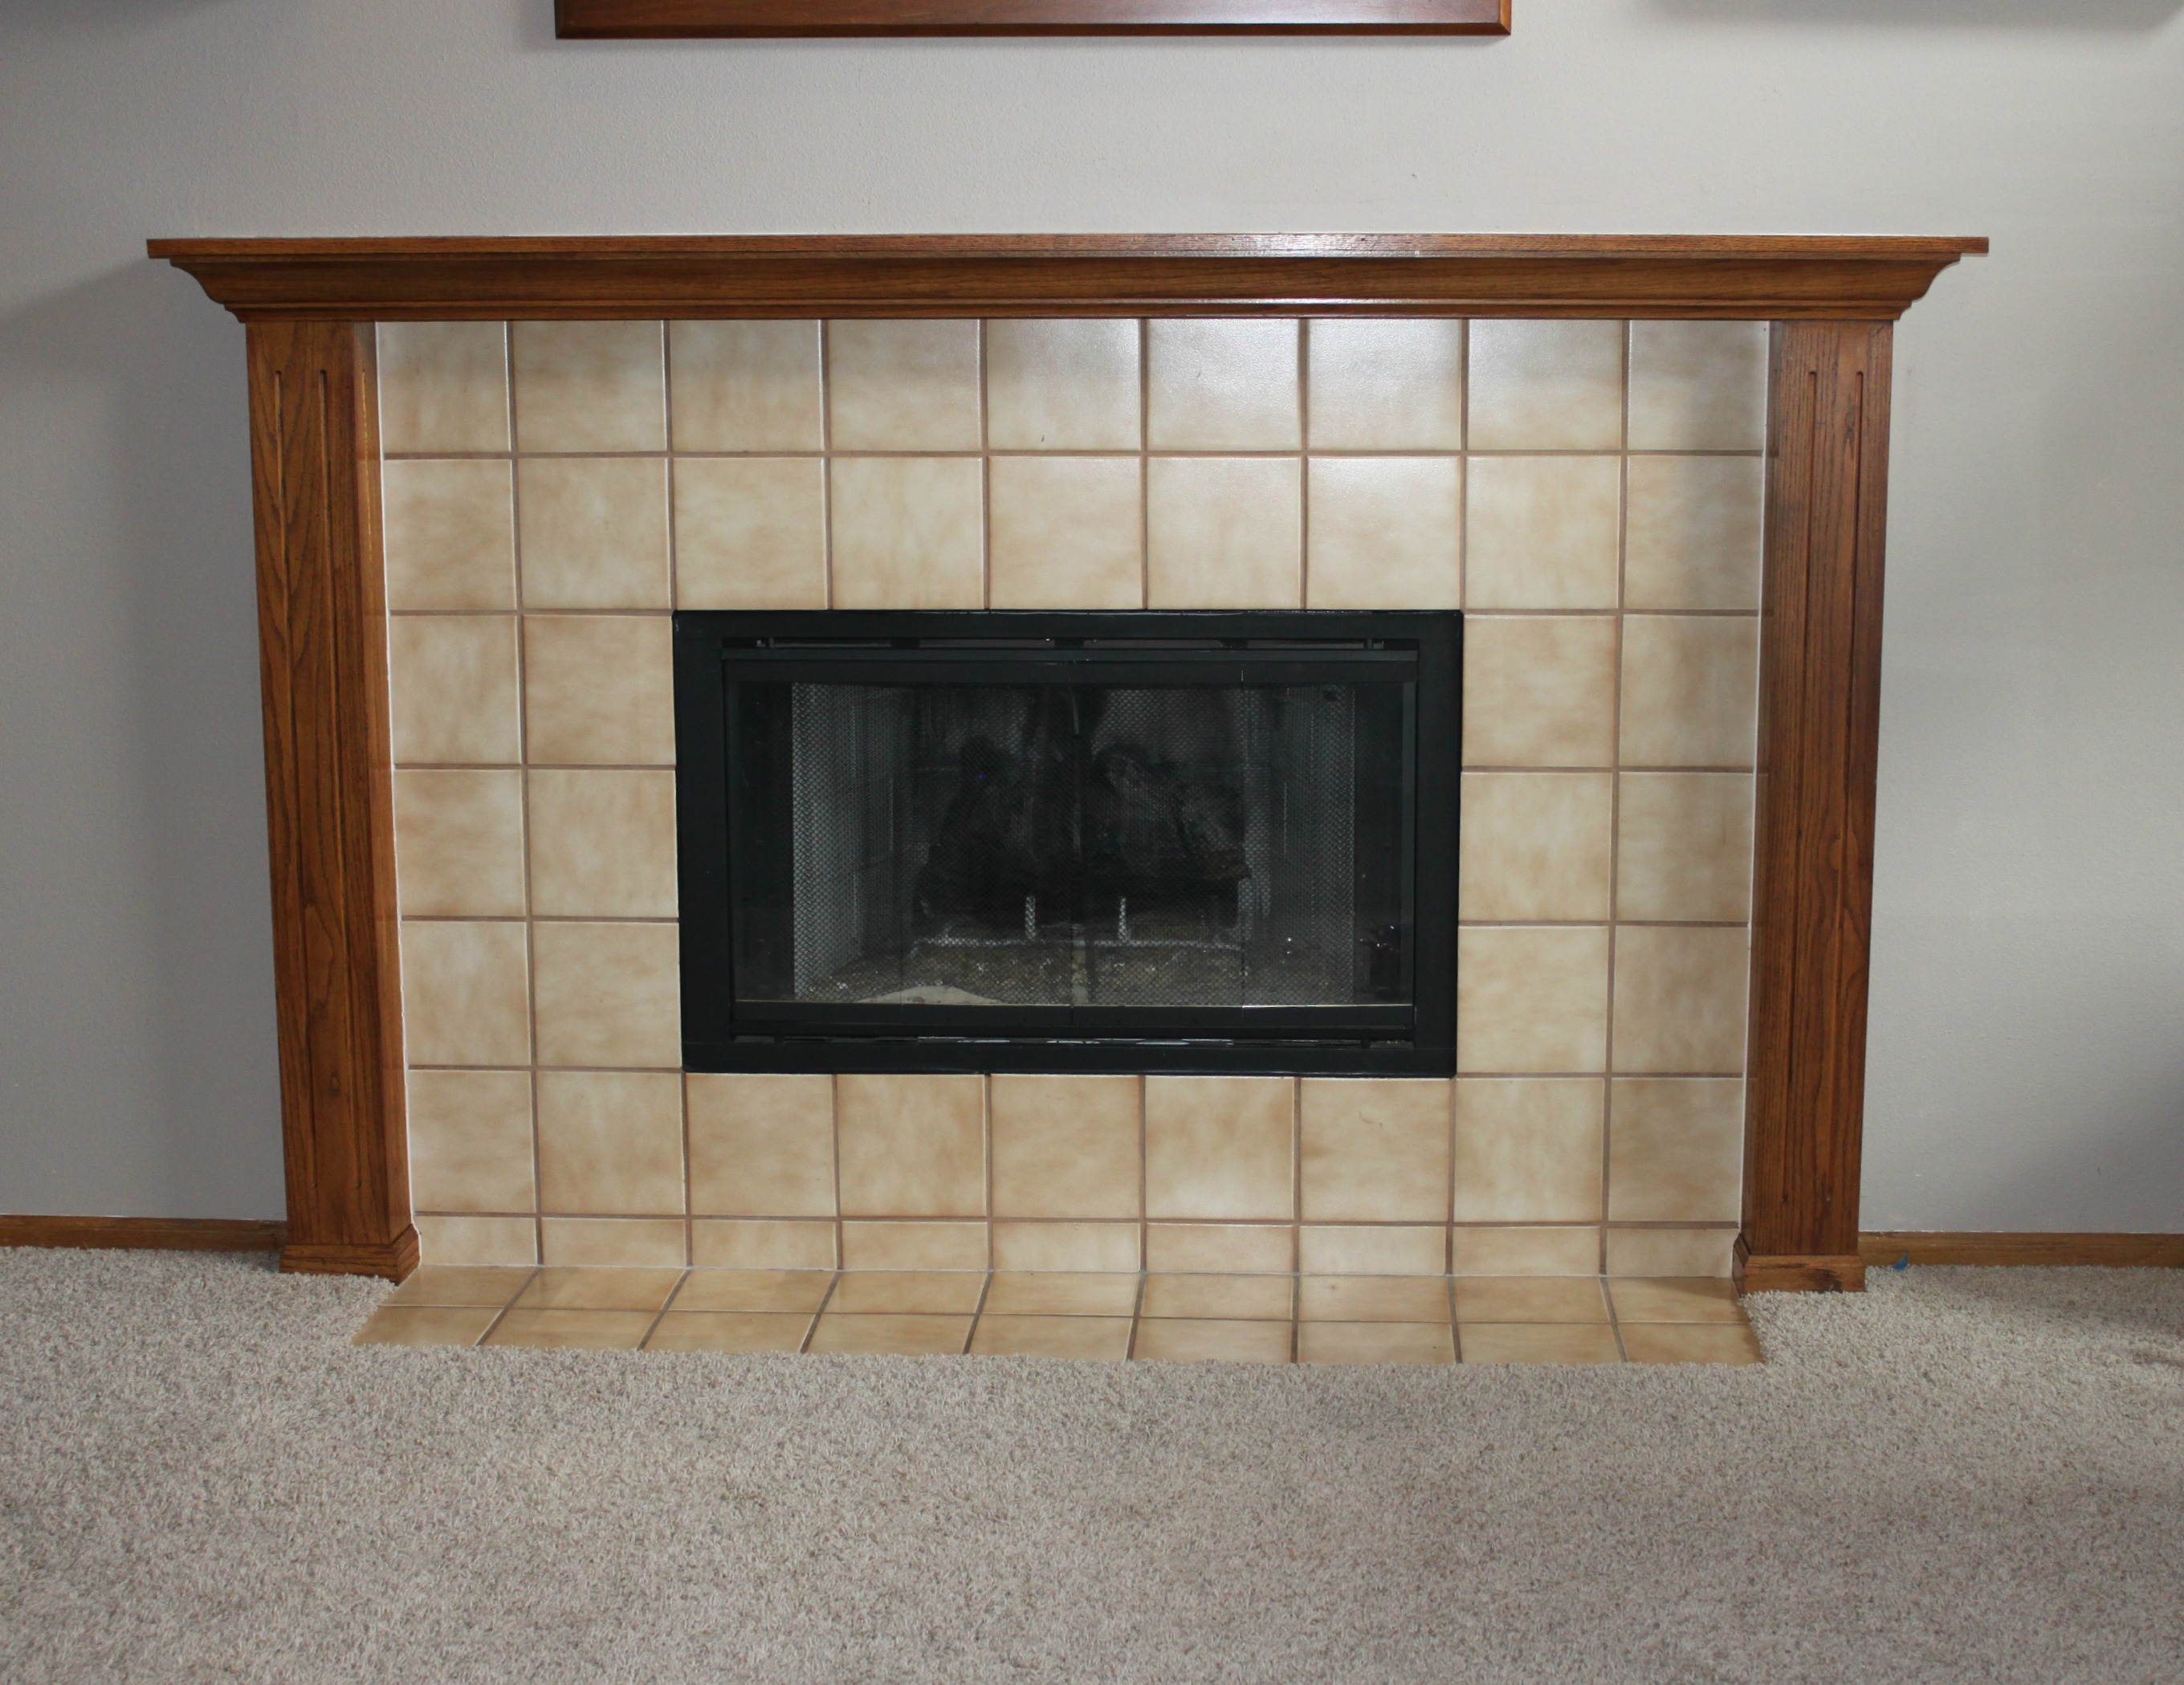 Check out this quick and easy fireplace update for tips on getting rid of brass or outdated fireplace doors and other accents.